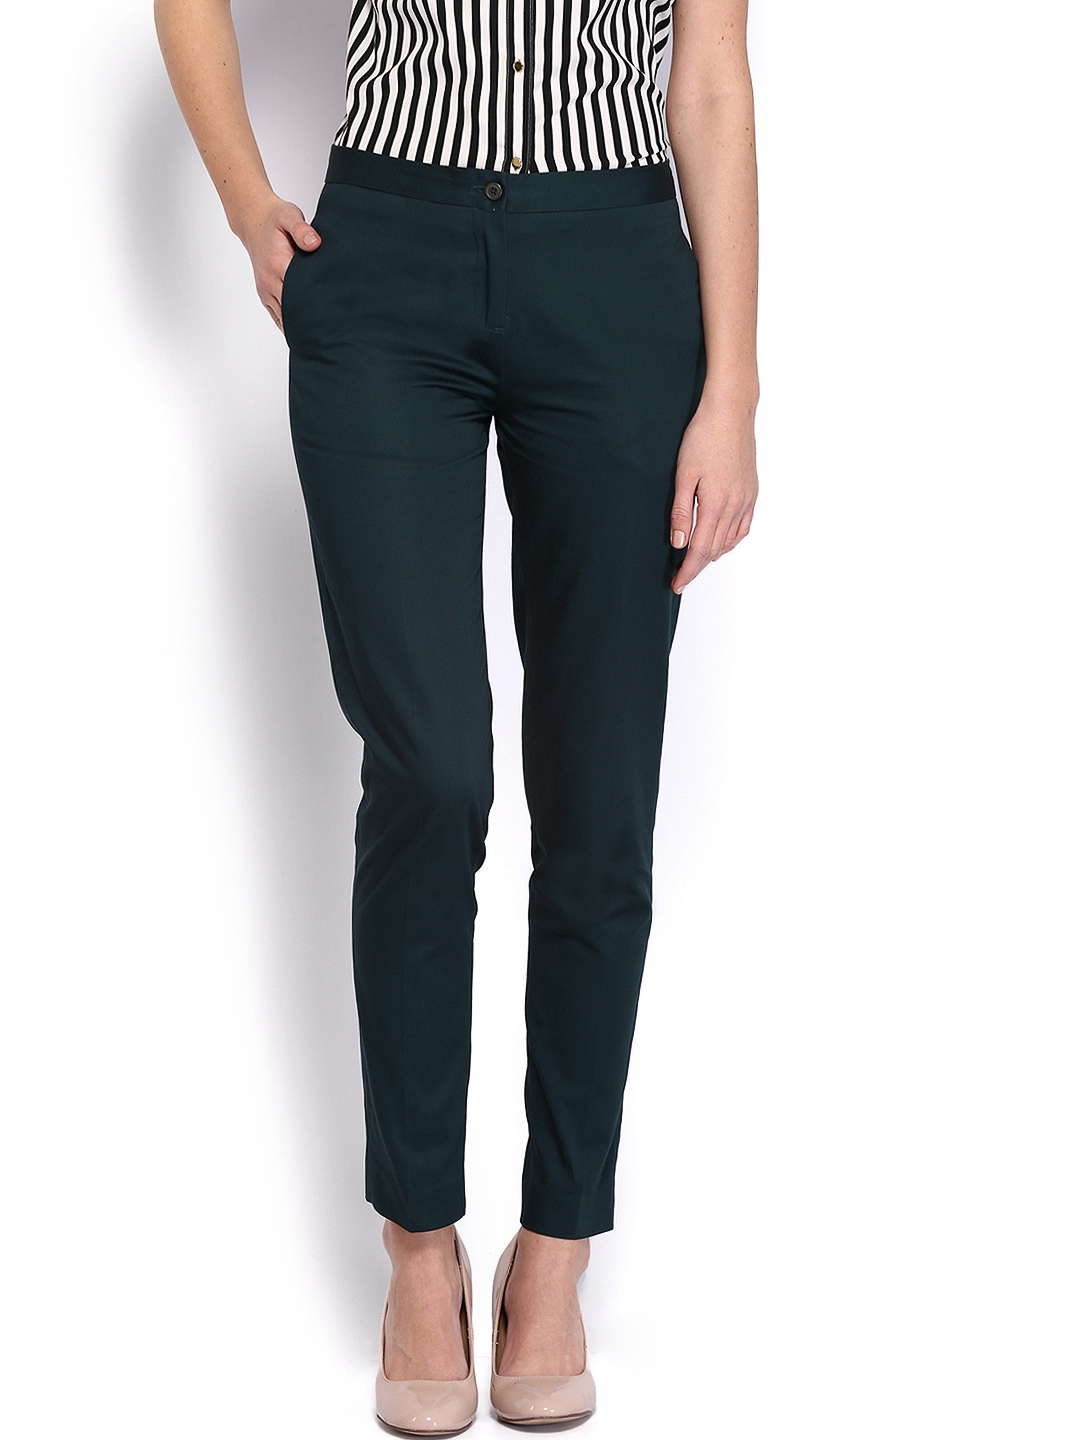 Online shopping for ladies trousers